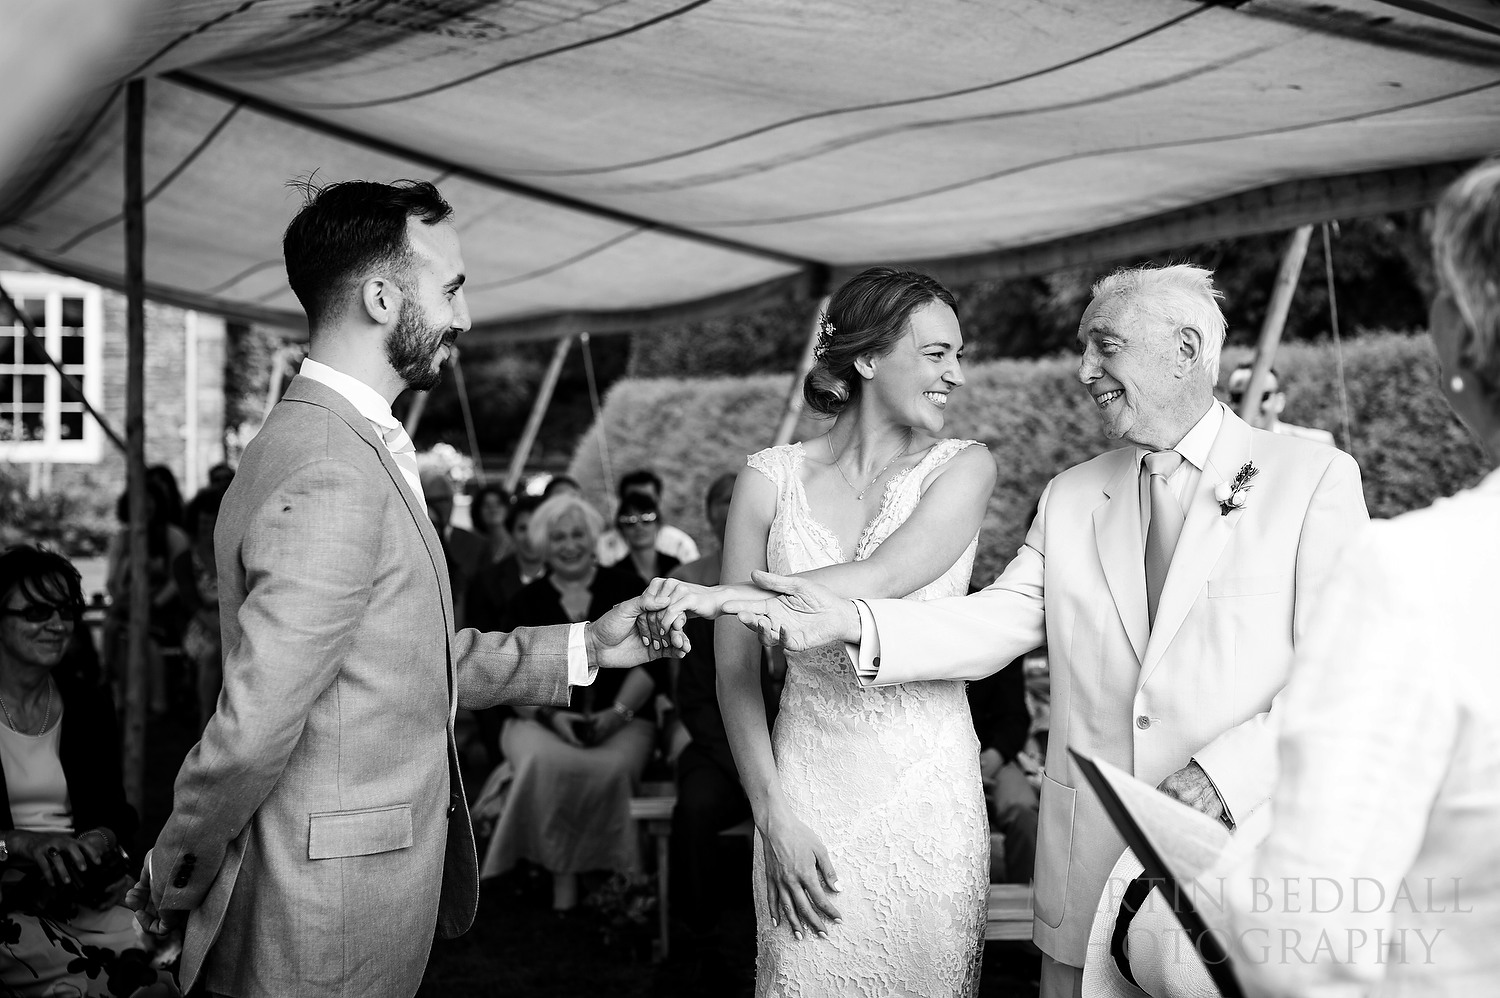 Bride's father gives her away